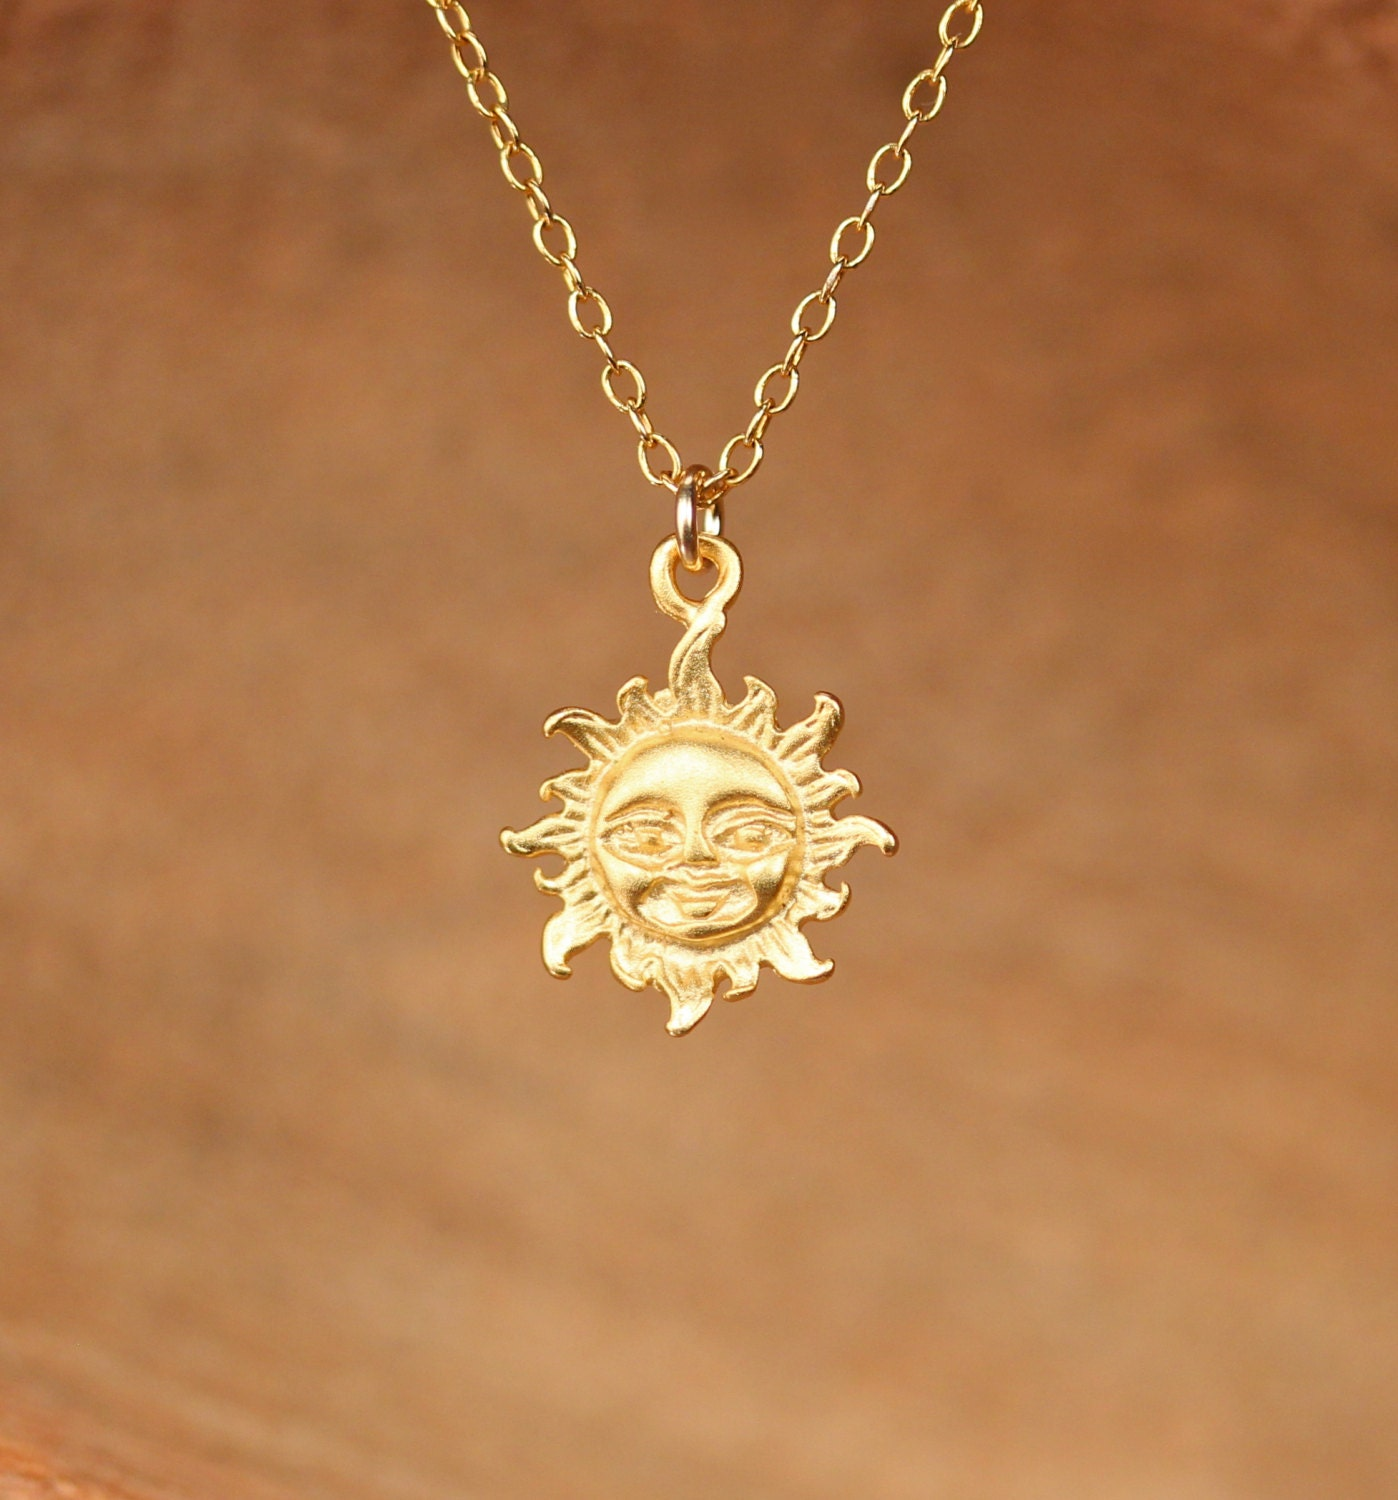 Gold Sun Necklace Www Imgkid Com The Image Kid Has It